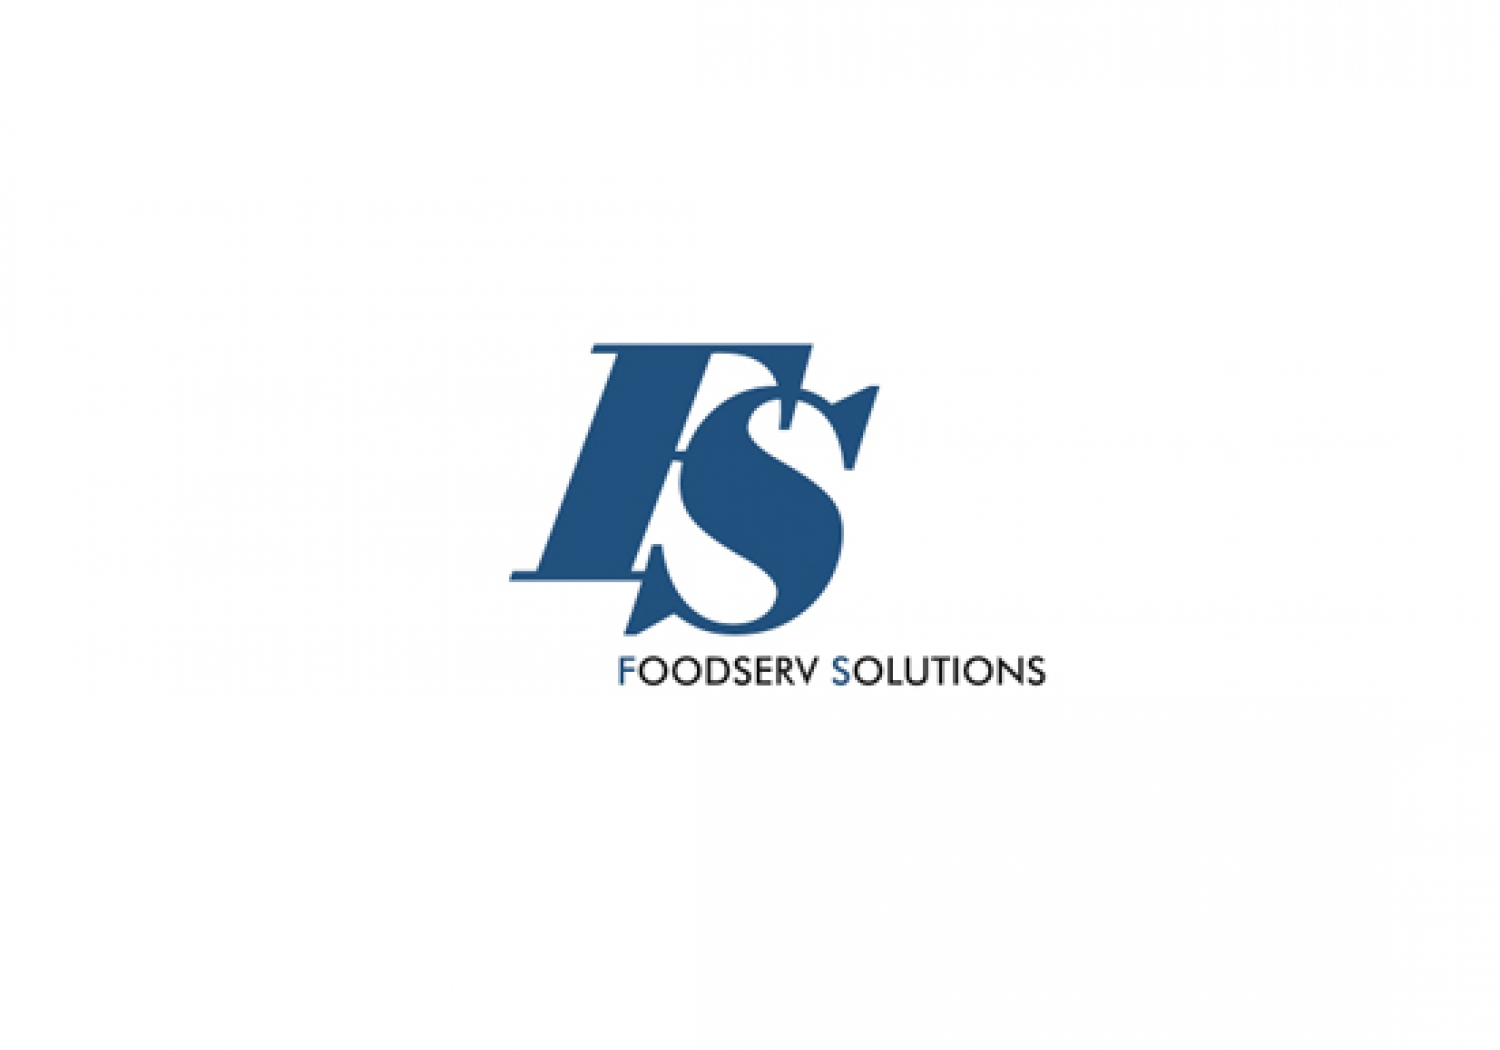 FOODSERV SOLUTIONS